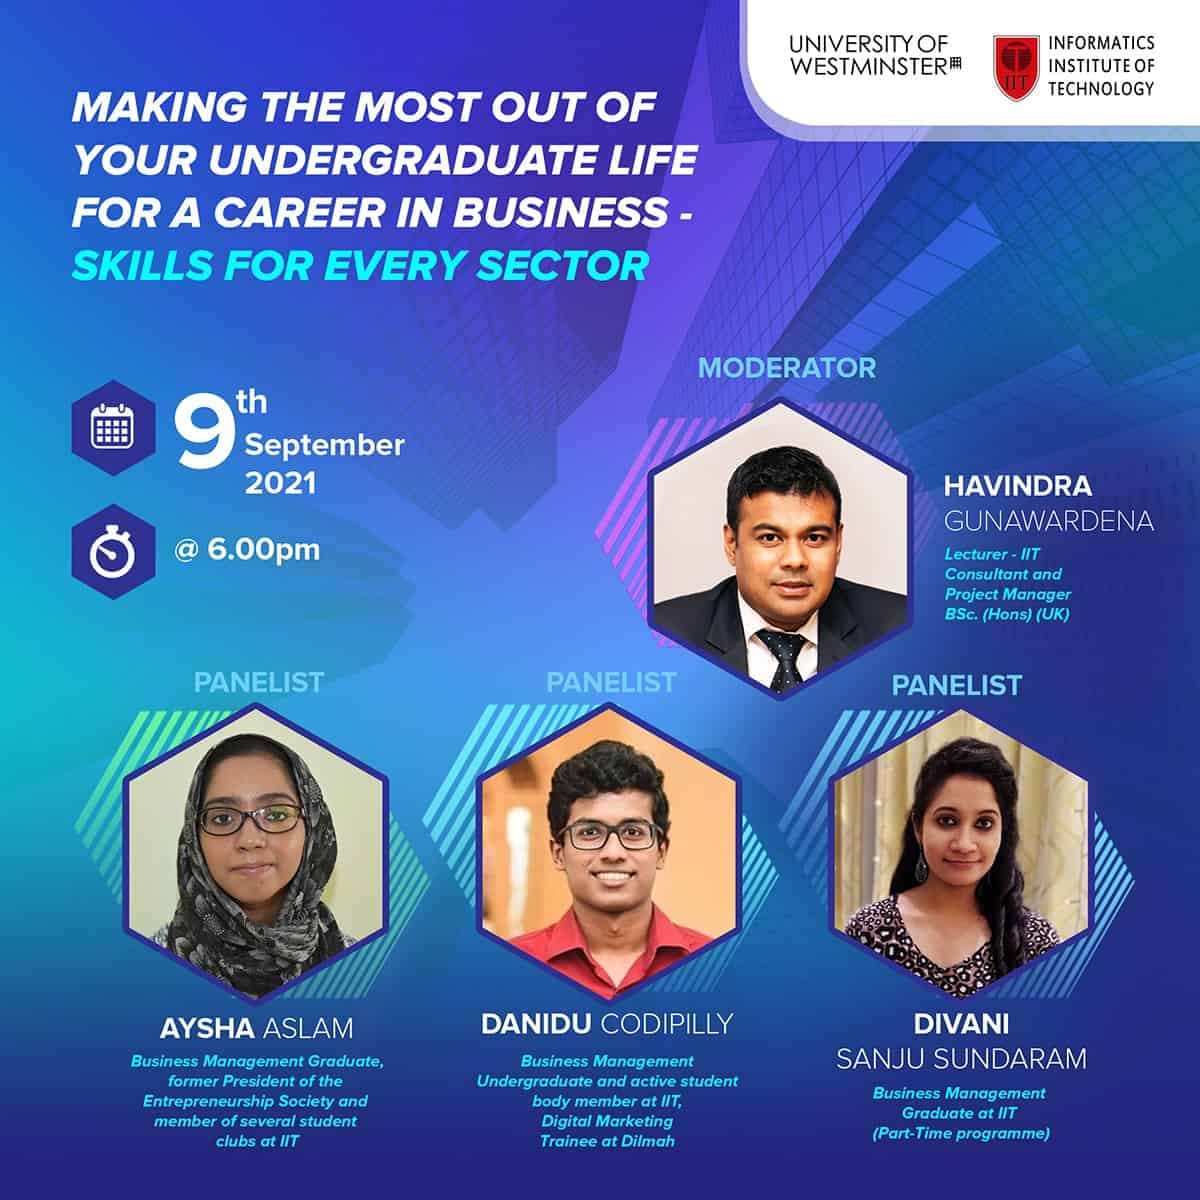 Making the most out of your undergraduate life for a career in Business - Skills for every sector